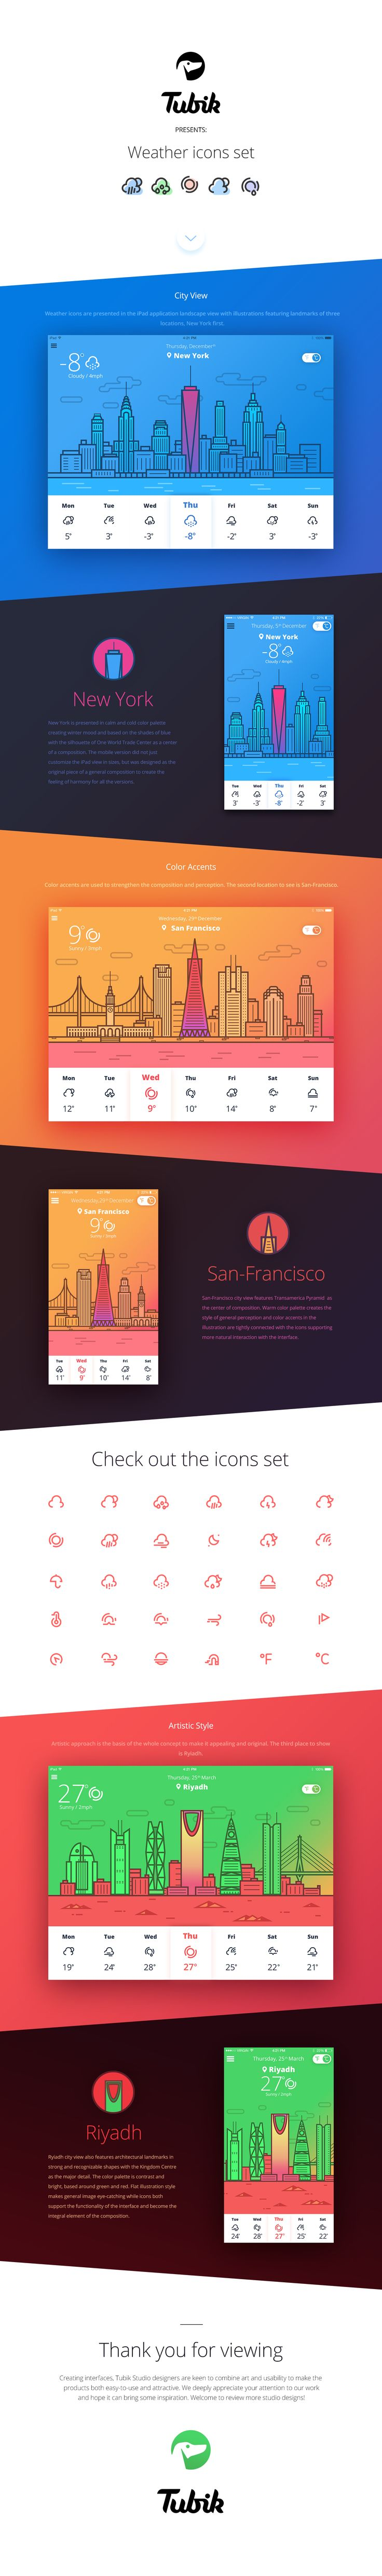 UI Inspiration: Layouts | Abduzeedo Design Inspiration